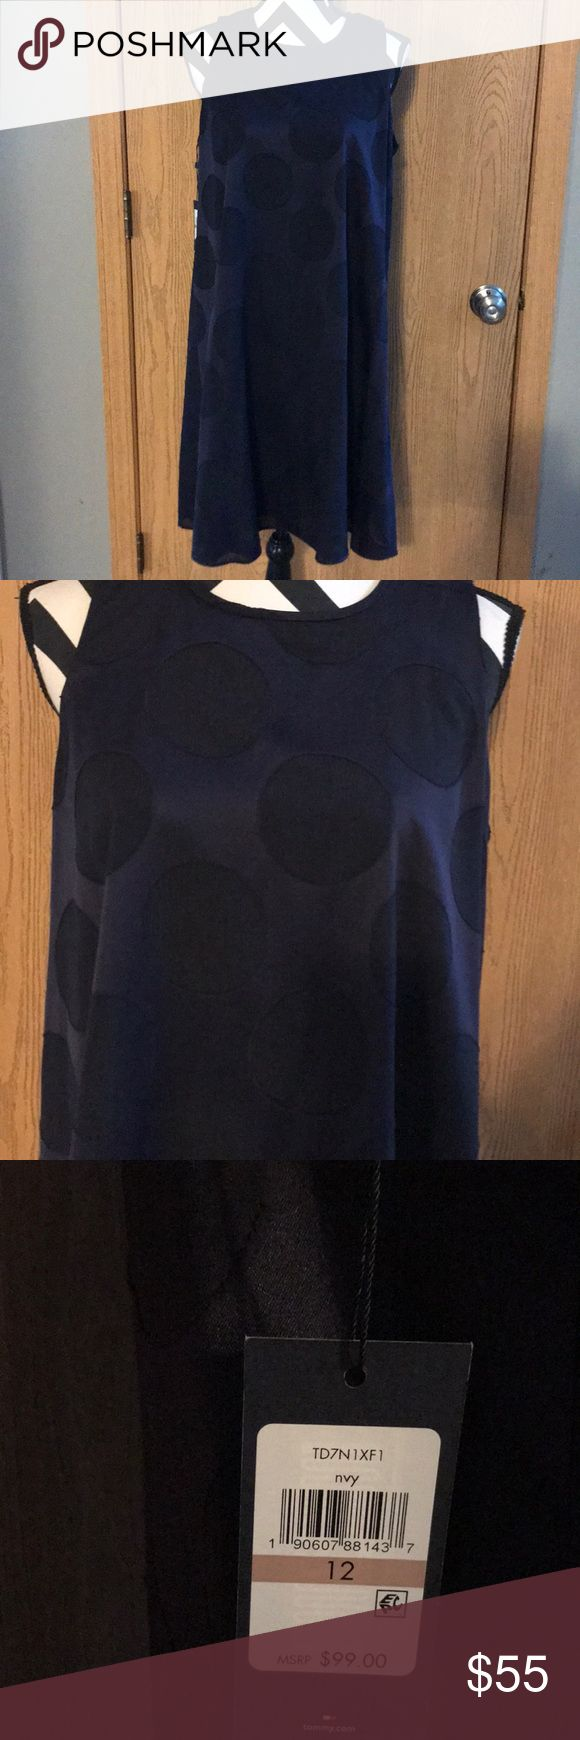 Tommy Hilfinger Beautiful Trapeze style dress brand new with tags Tommy Hilfiger Dresses Midi